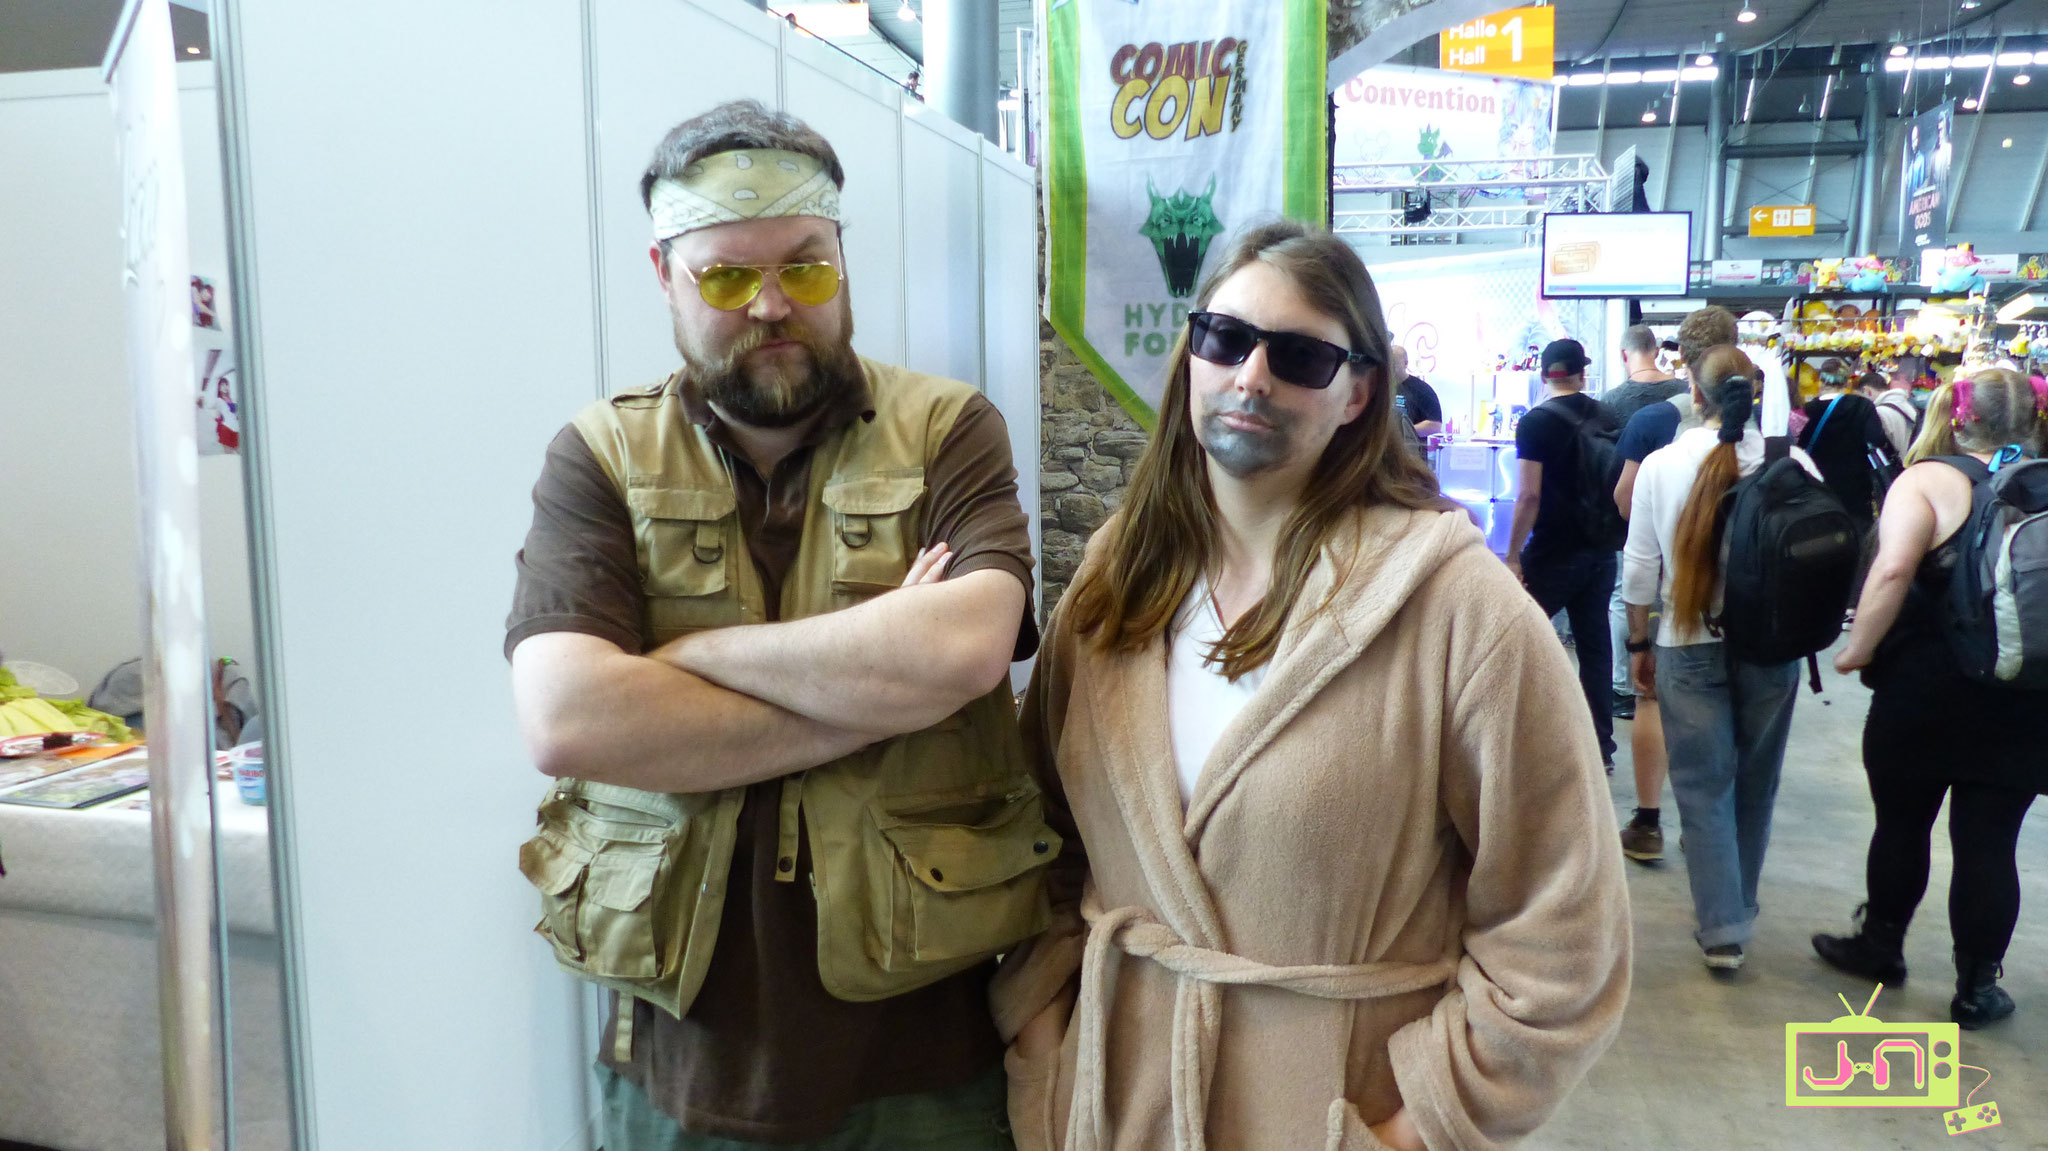 Walter and the Dude.... coolest Cosplay ever